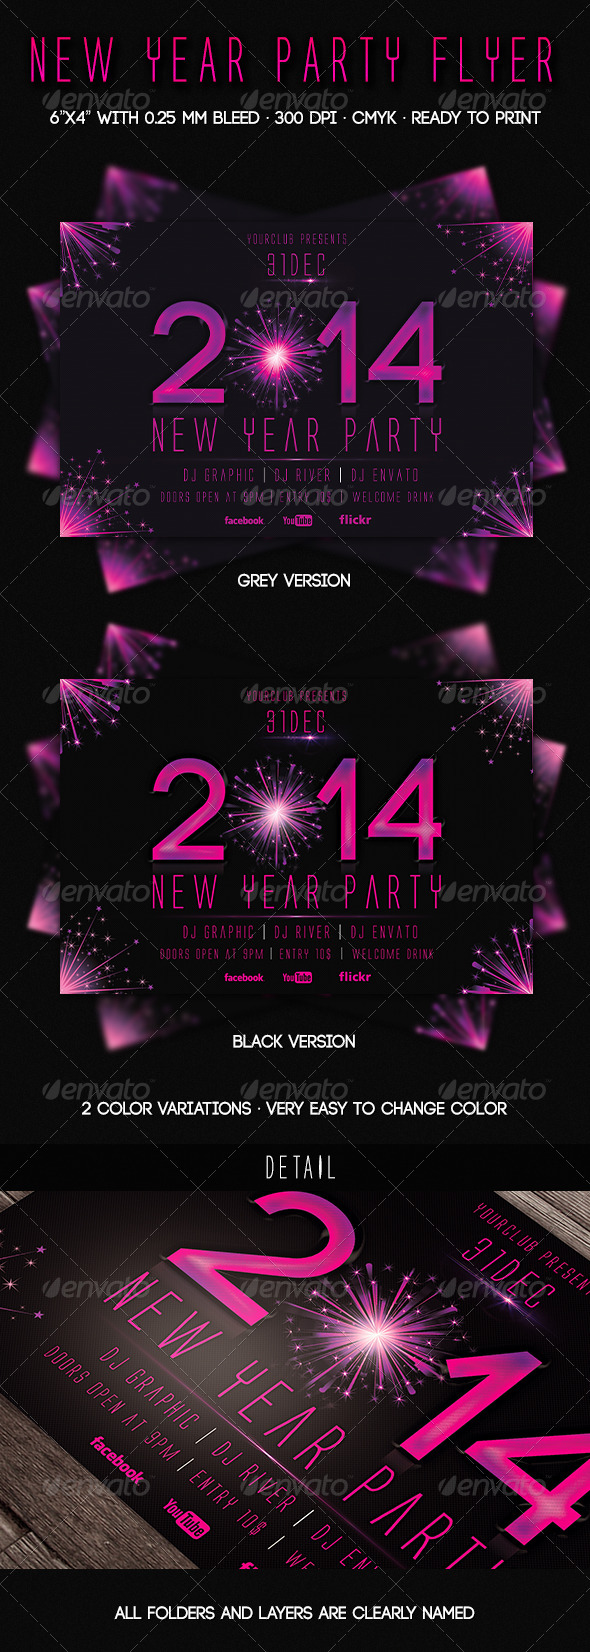 2014 New Year Party Flyer - Events Flyers